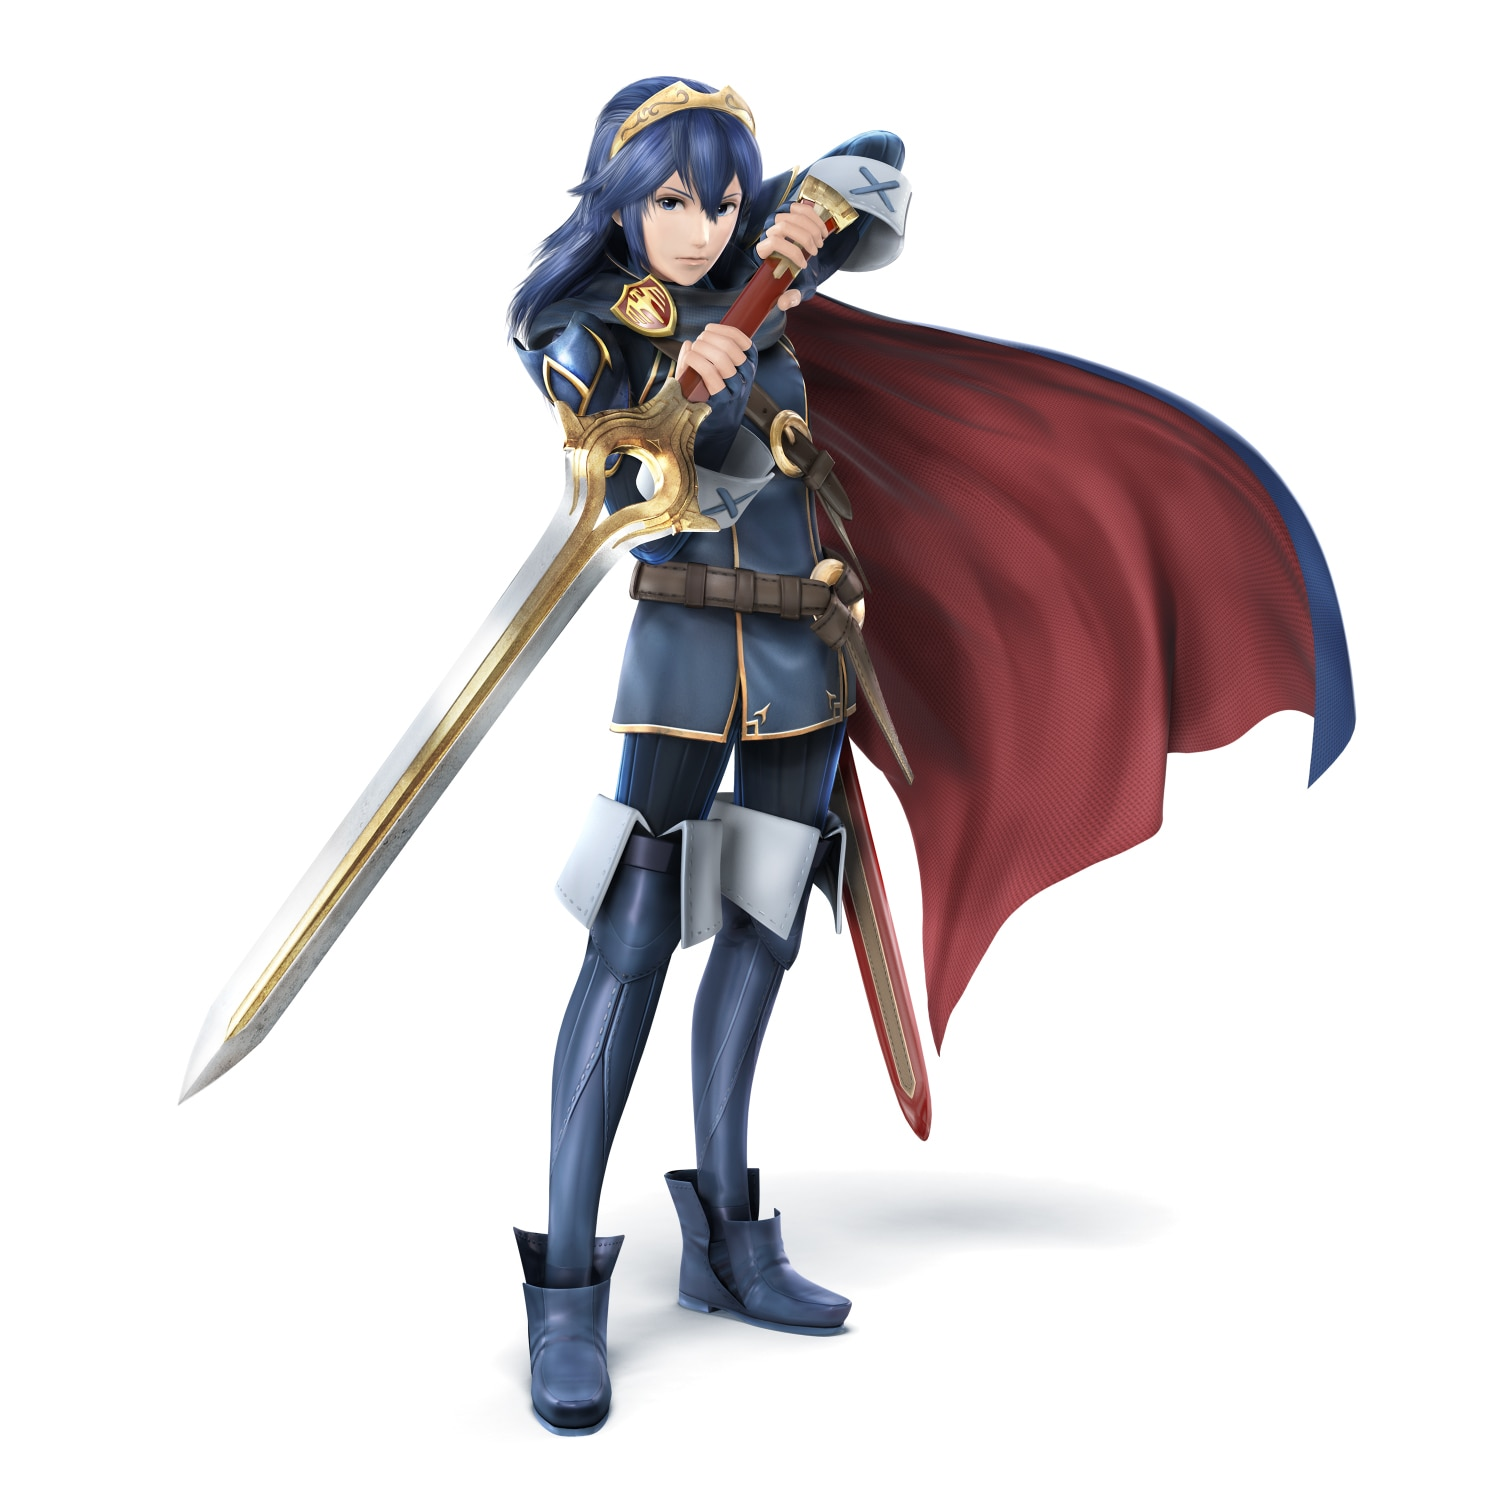 Super Smash Bros. for Nintendo 3DS / Wii U: Lucina